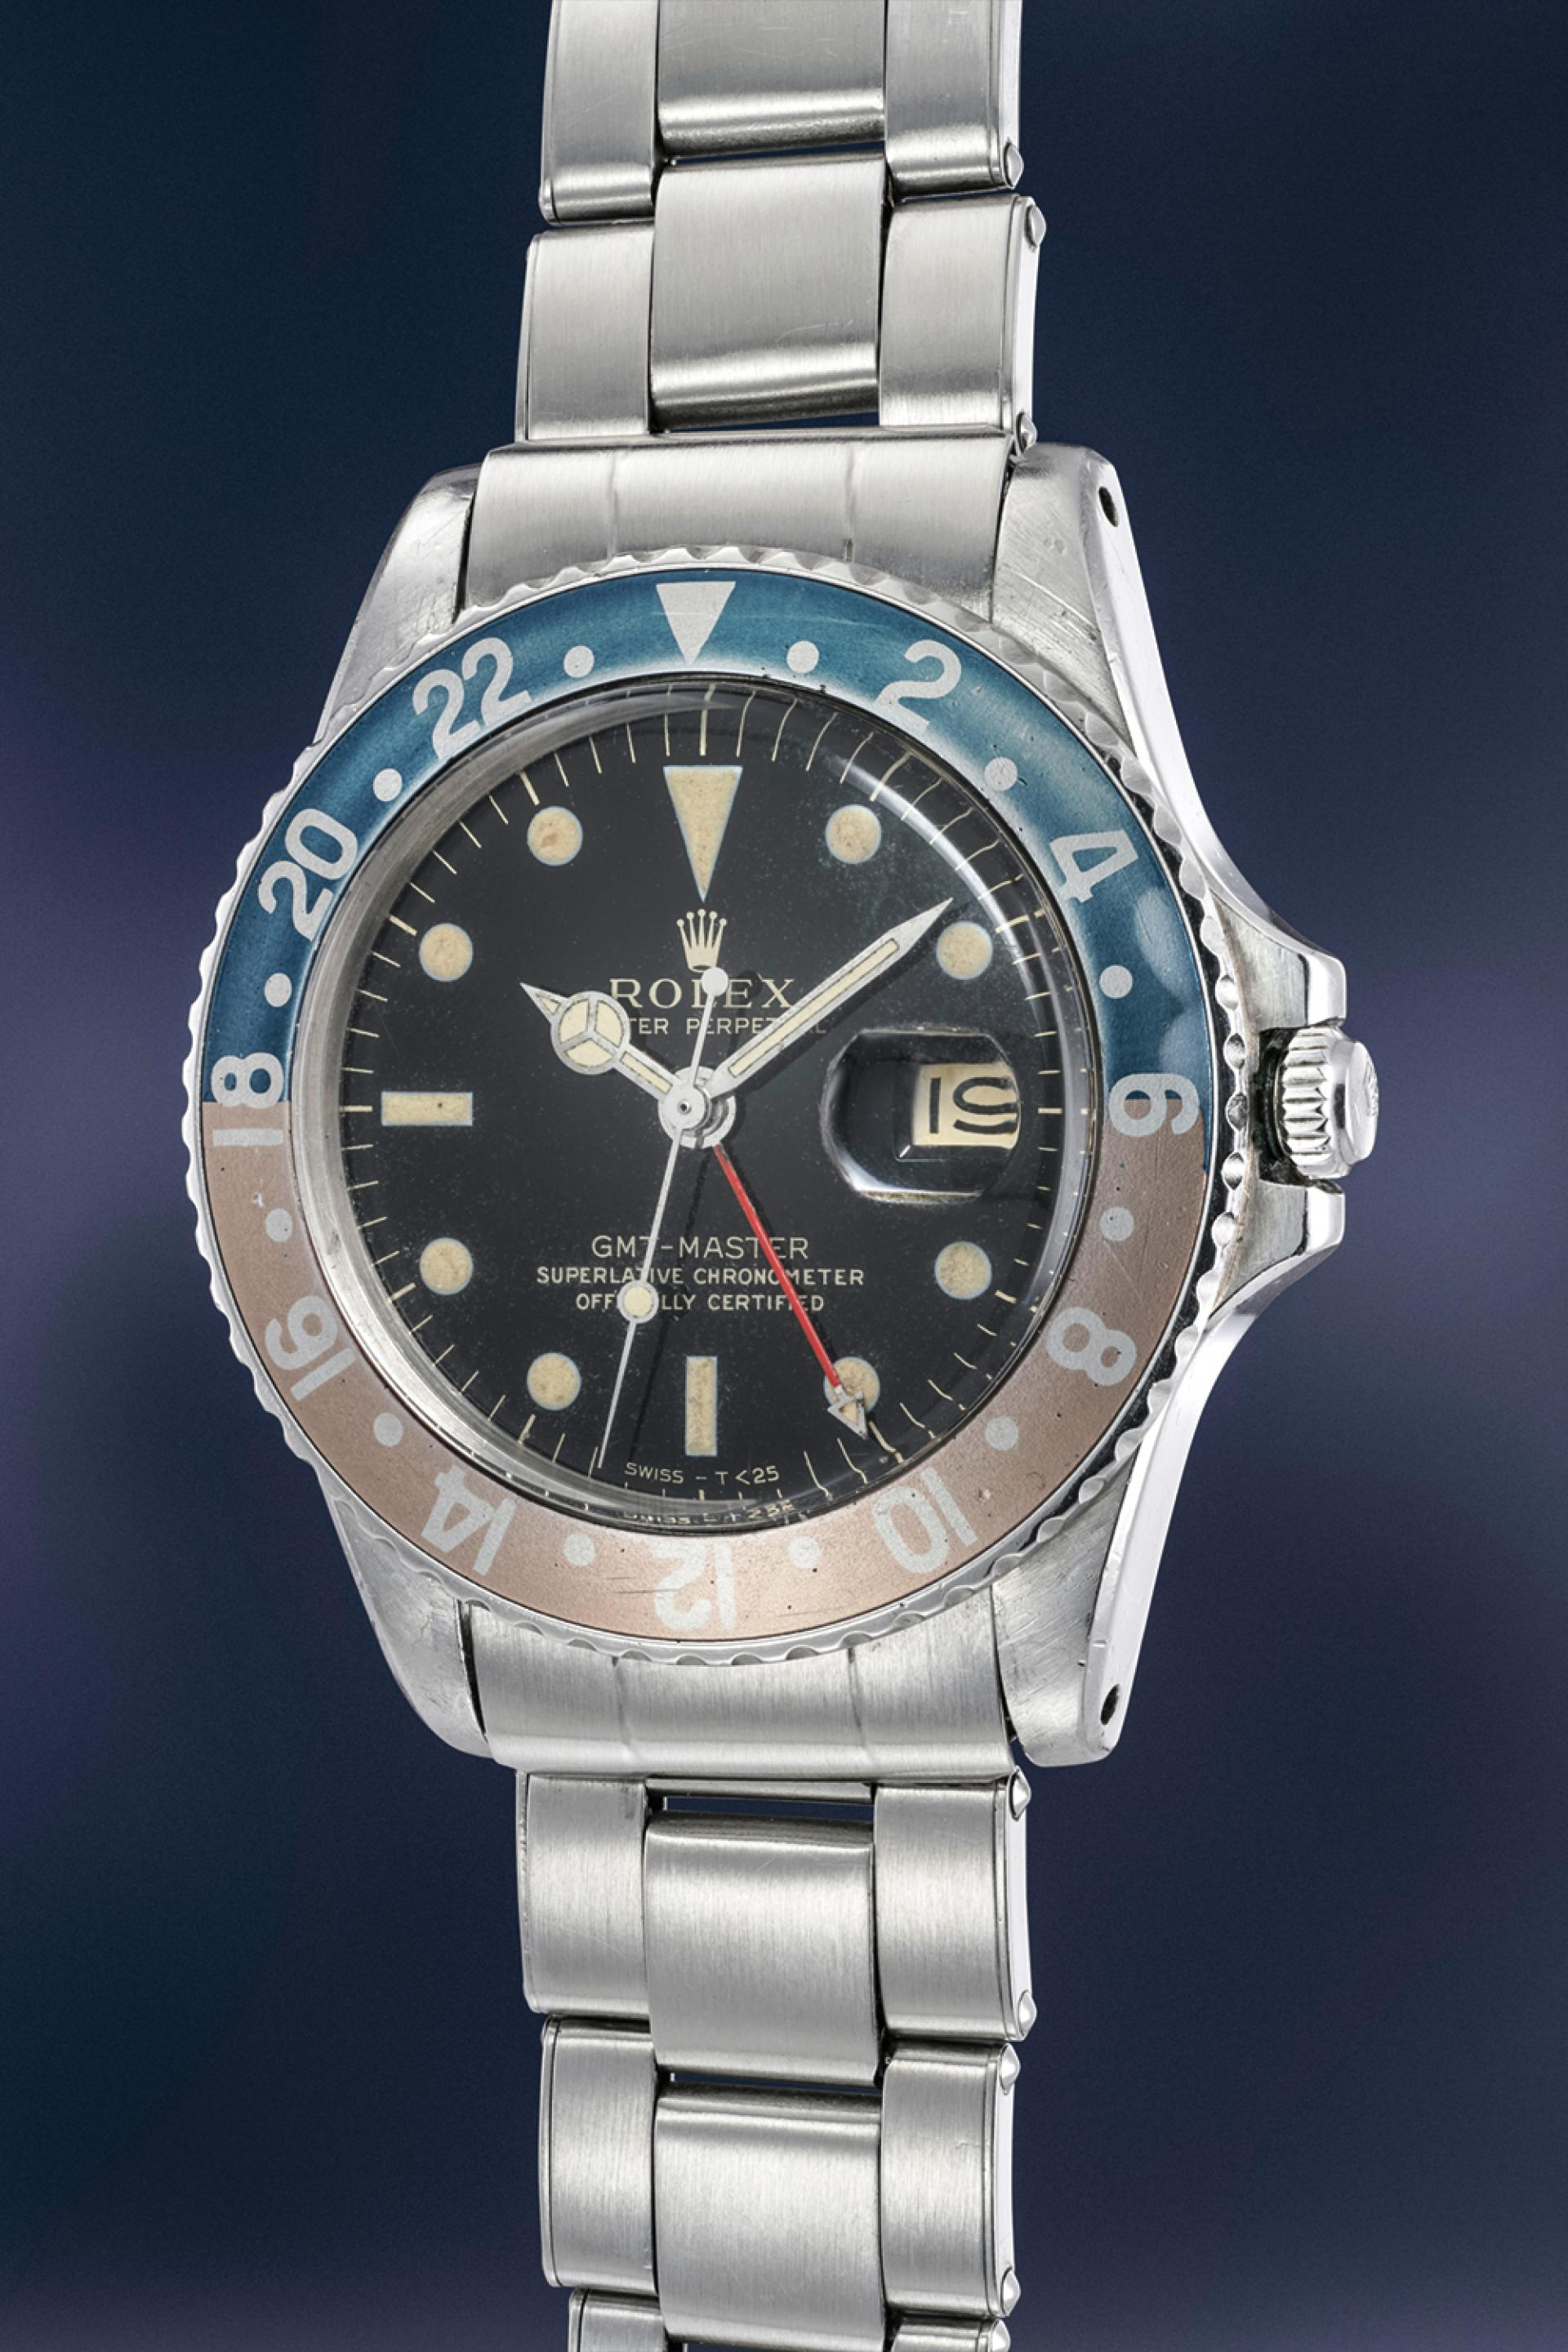 Rolex GMT-Master from 1966